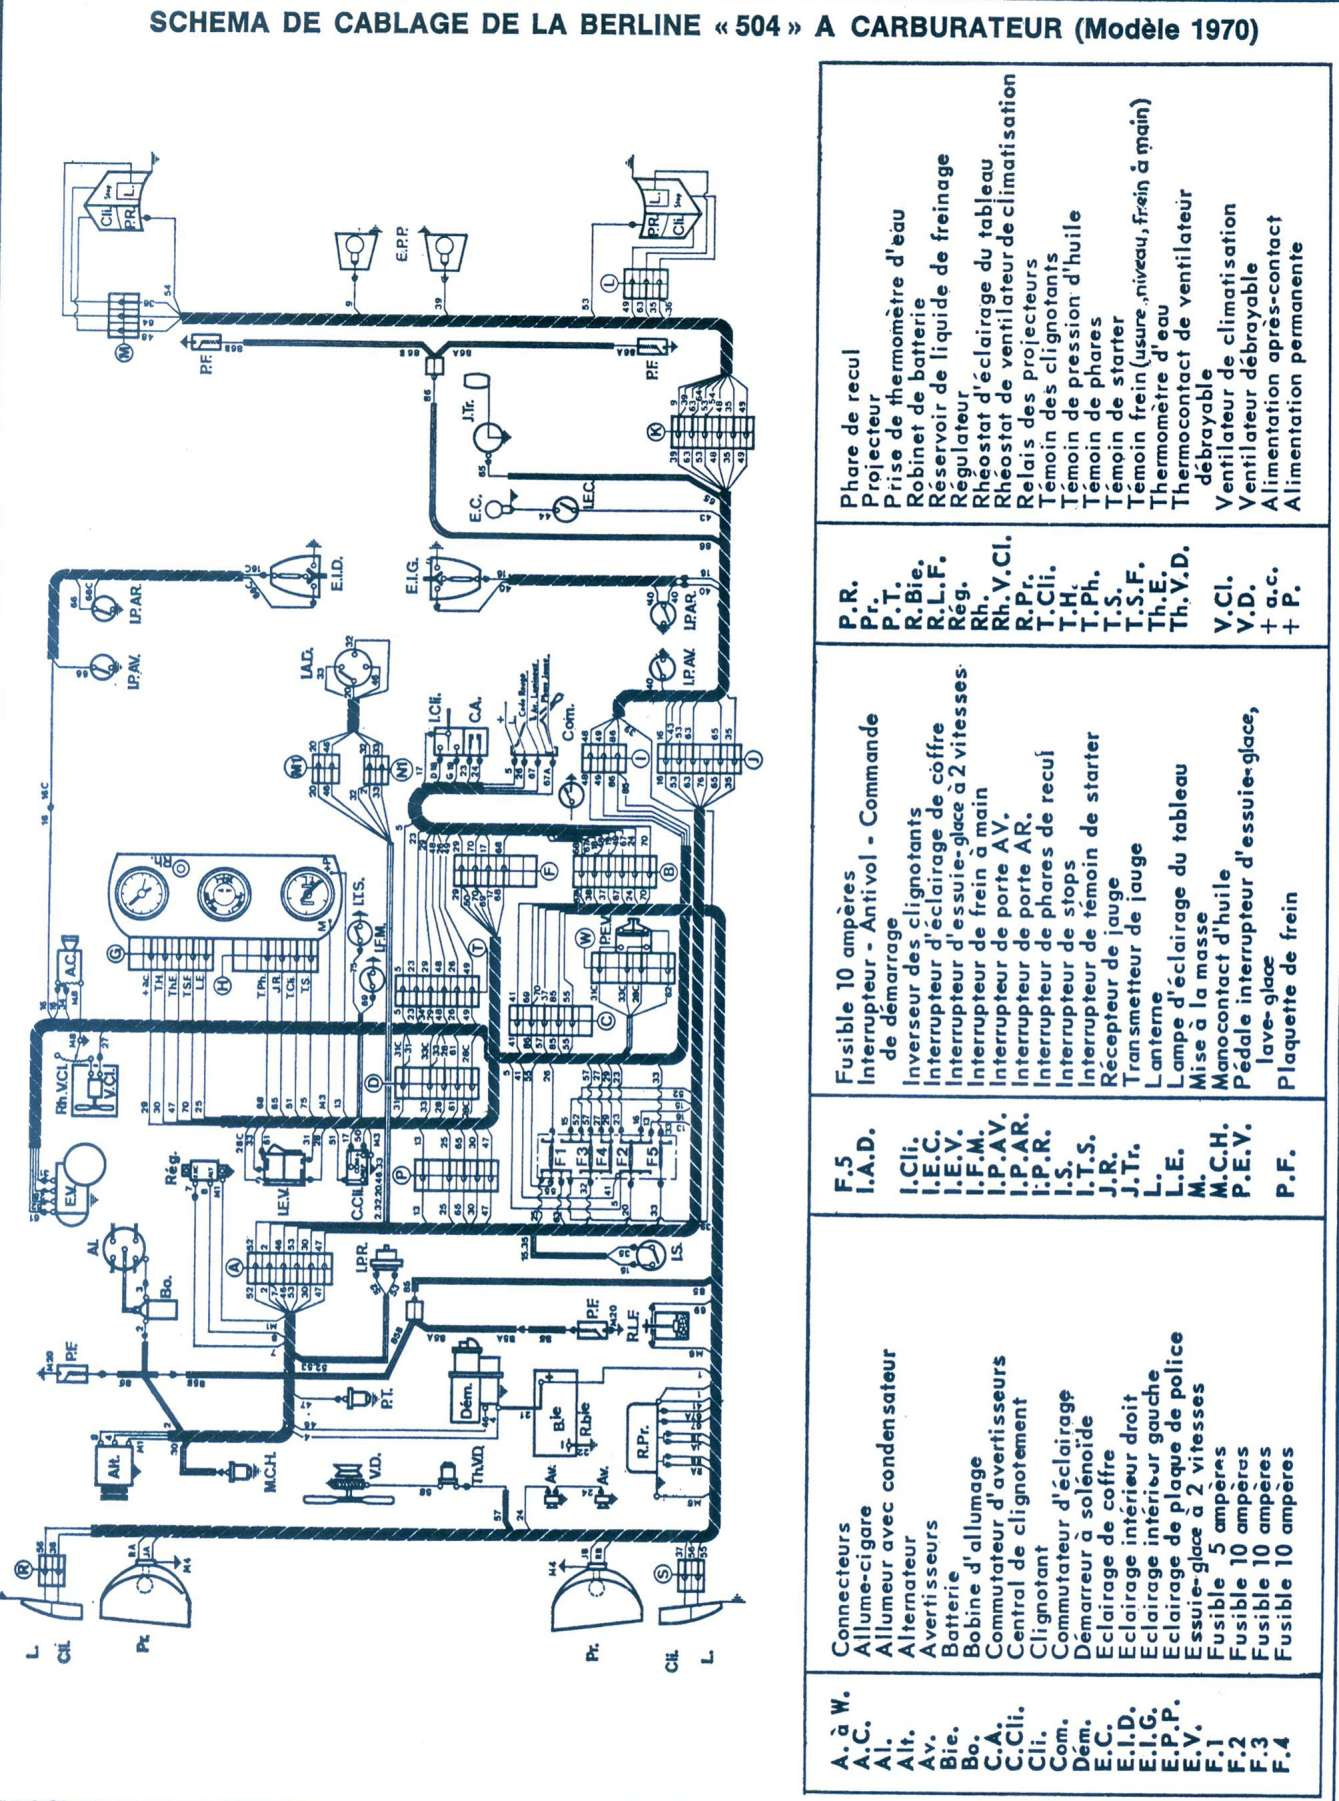 Peugeot 106 Wiring Diagram Pdf Library Fuse Box Manual I Was Searching With Google For An Electrical Came Across